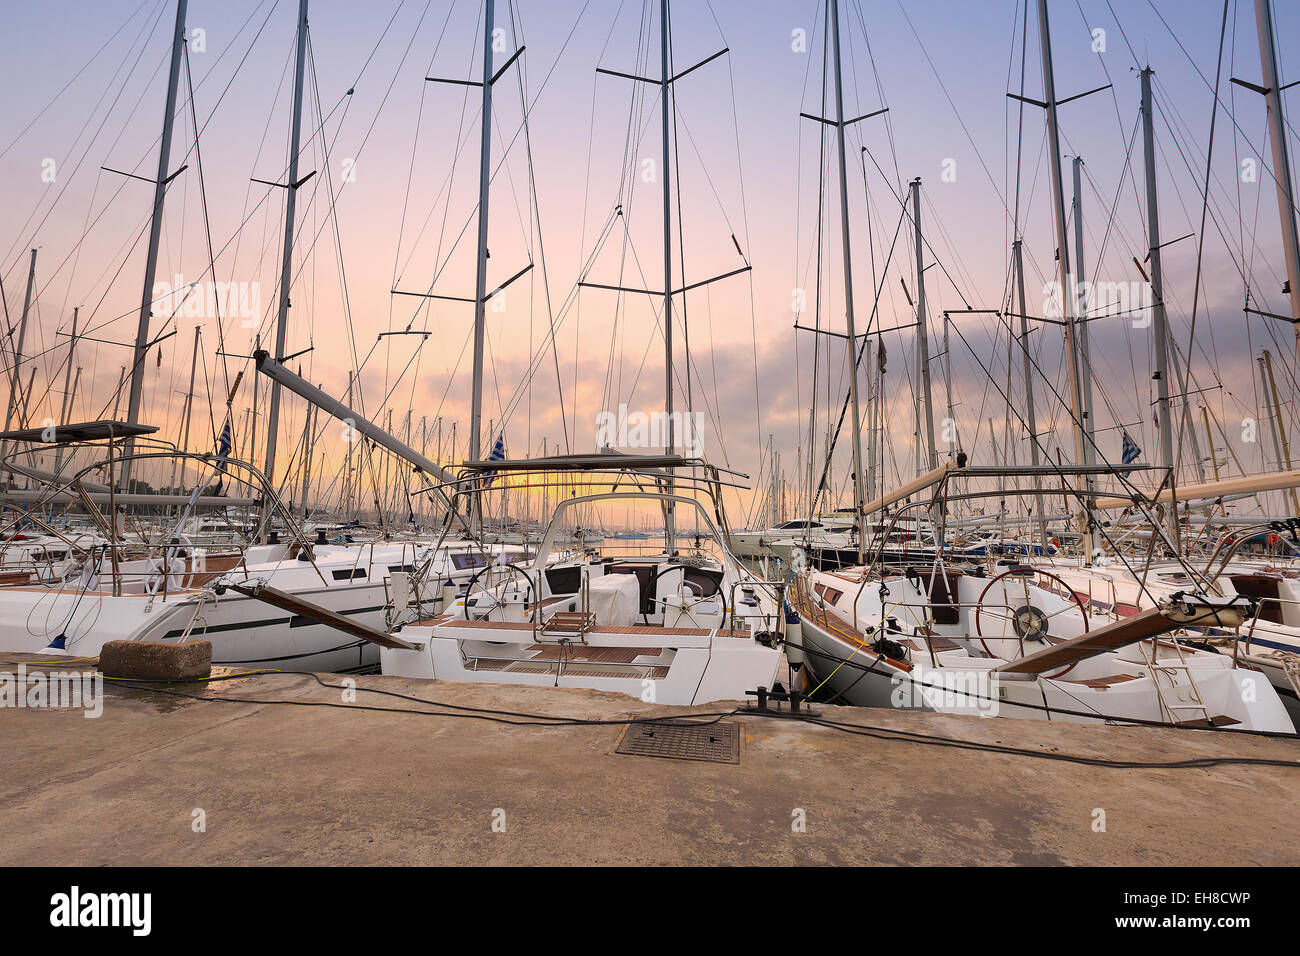 Sunset in Alimos marina in Athens, Greece. - Stock Image